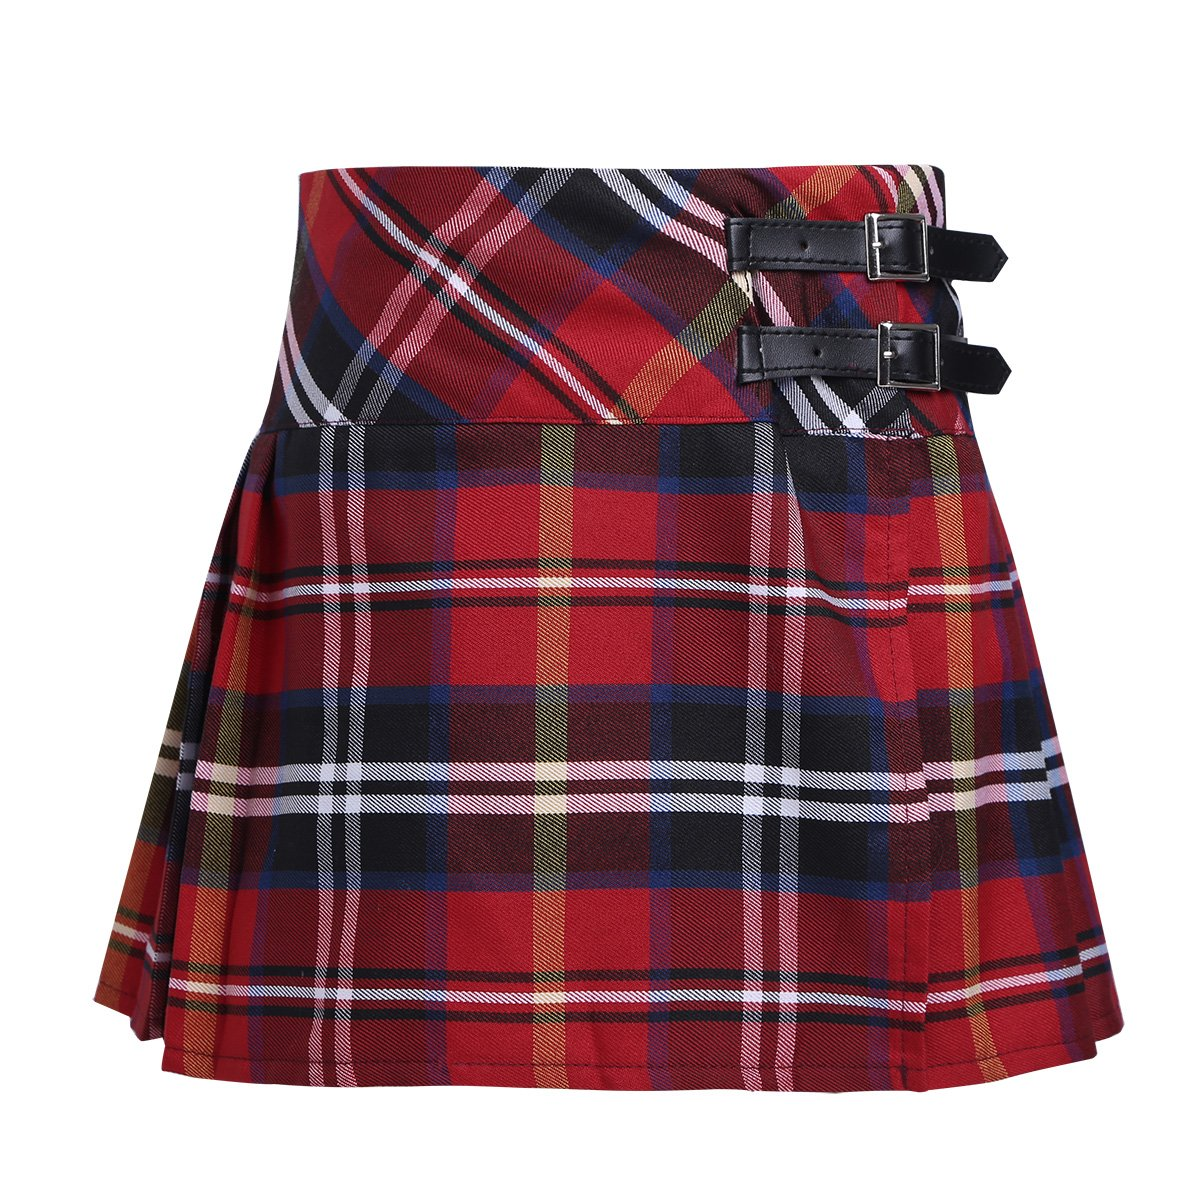 MSemis Girls Kids Pleated Plaid Tartan Billie Kilt Skirt with Leather Buckled Straps Classic School Uniforms Mini Skirts